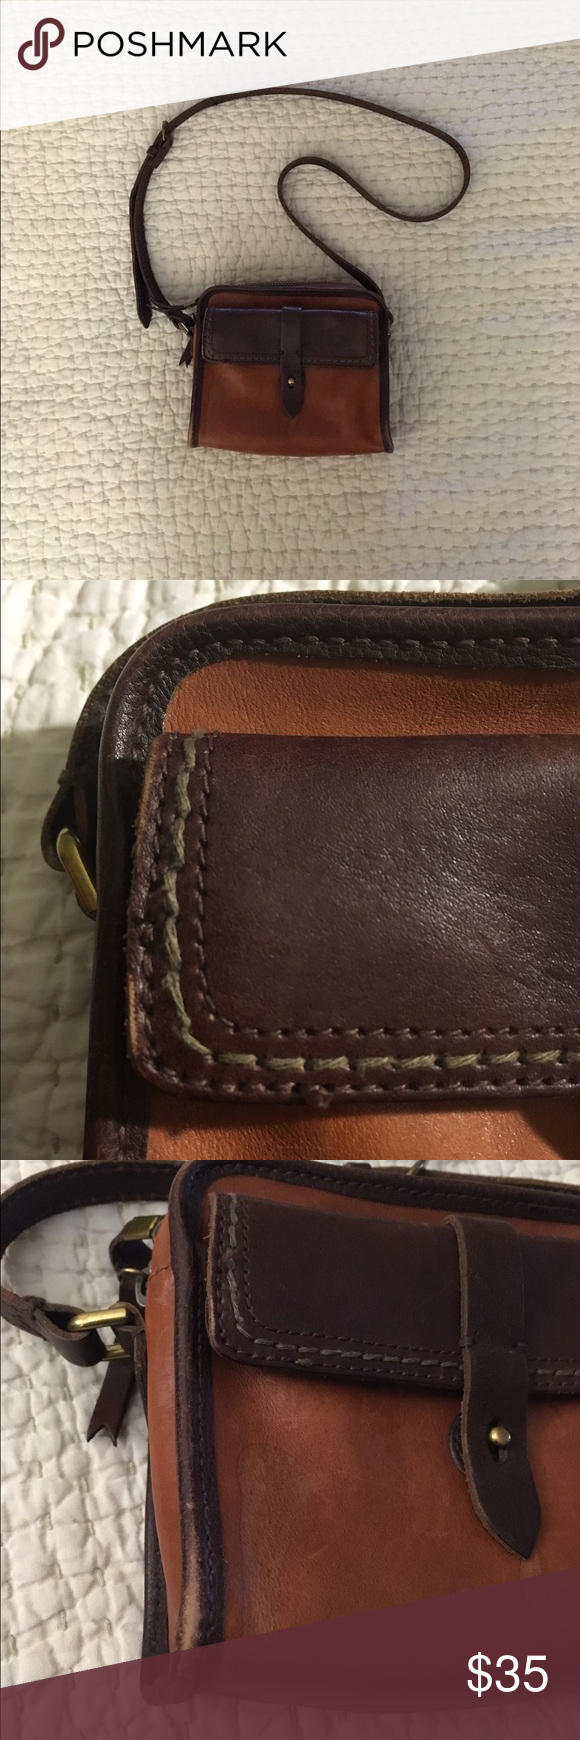 c084c4989eda Madewell Heritage Leather Camera Bag Genuine leather. This bag has a water  stain on he front as pictured. There is also wear on the corners.